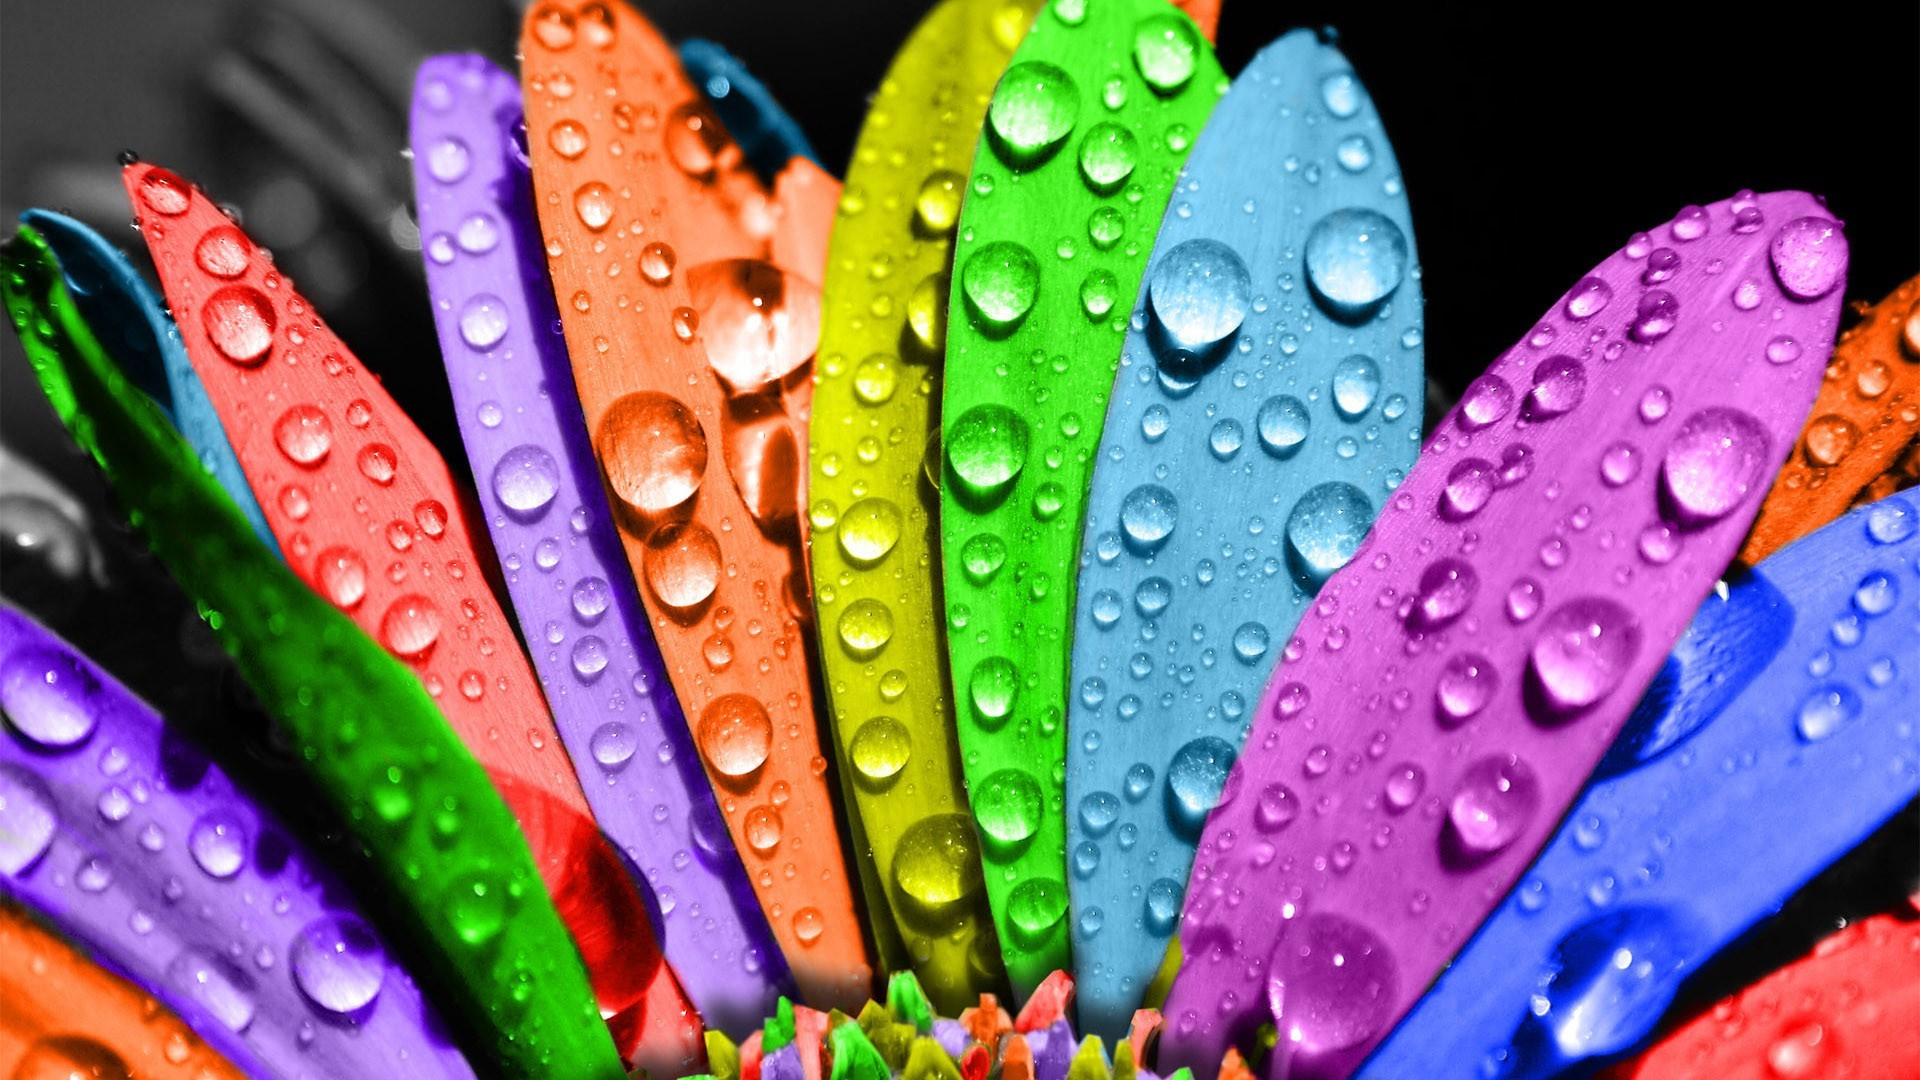 Download Free Pretty Colorful Wallpapers | Wallpapers, Backgrounds ...